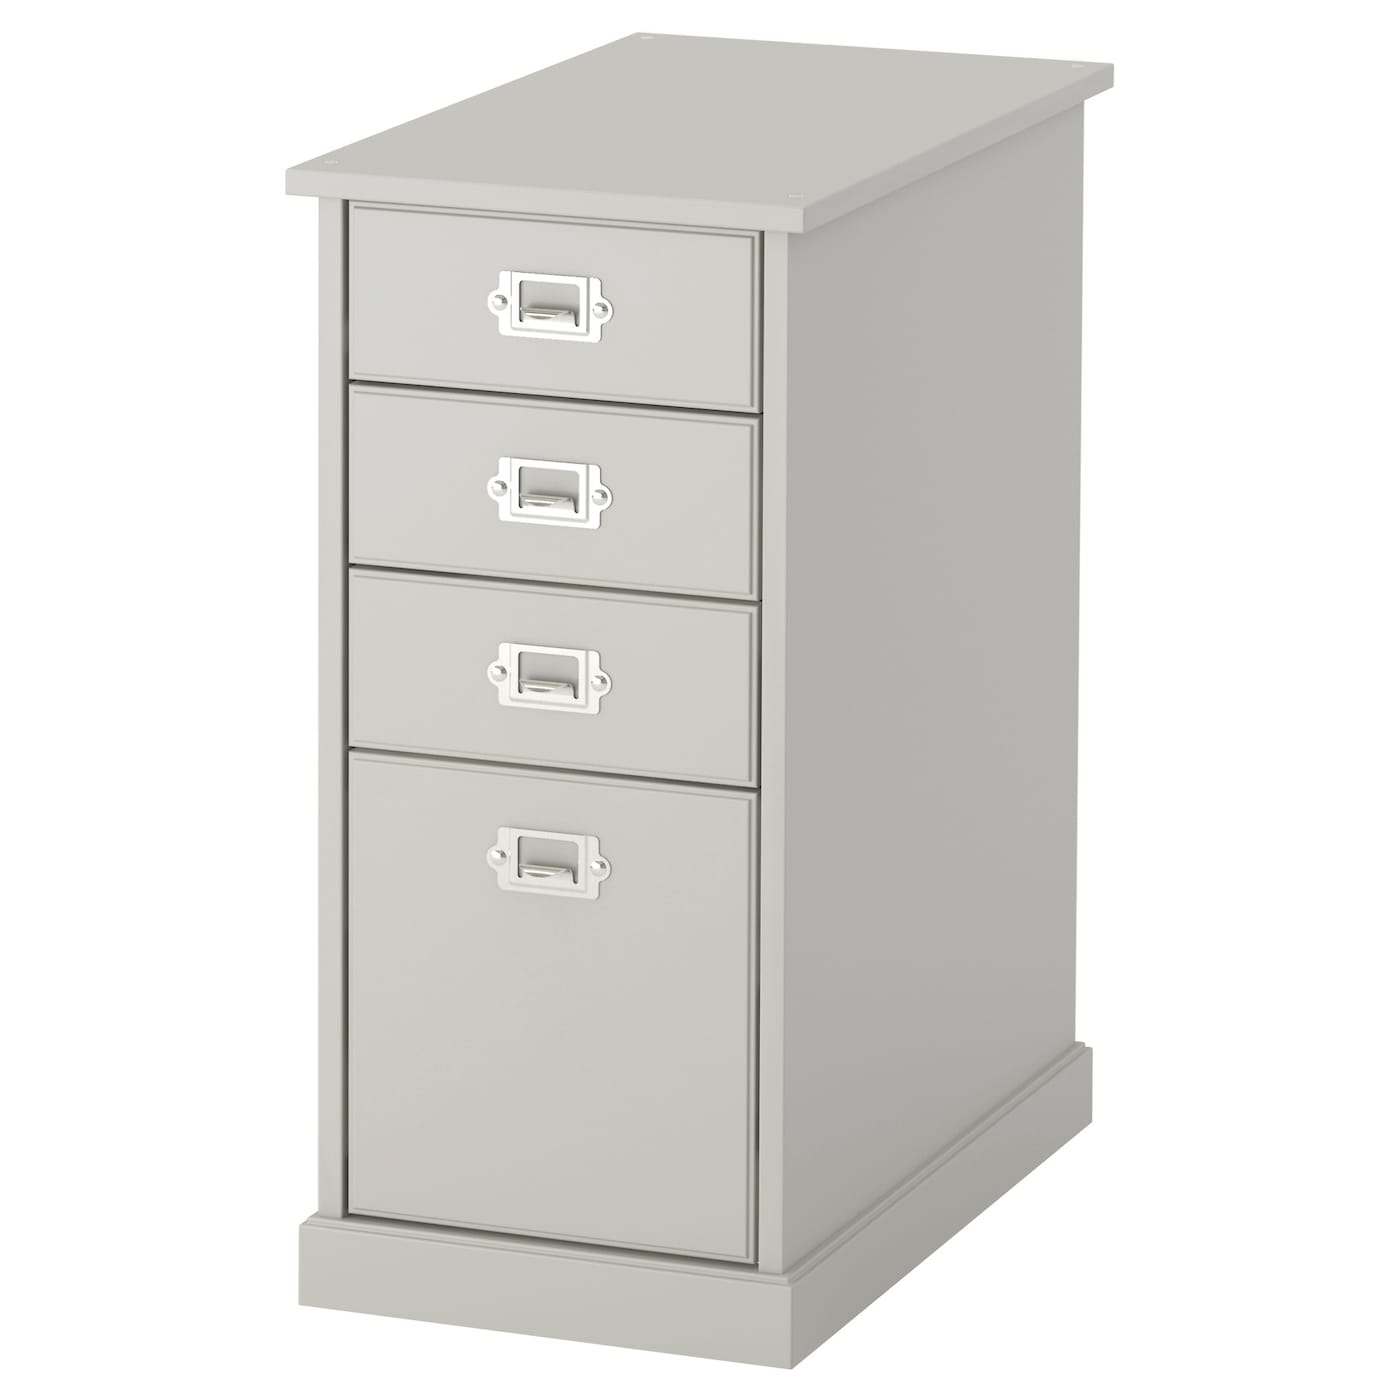 Klimpen drawer unit light grey 33x70 cm ikea for Meuble classeur suspendu